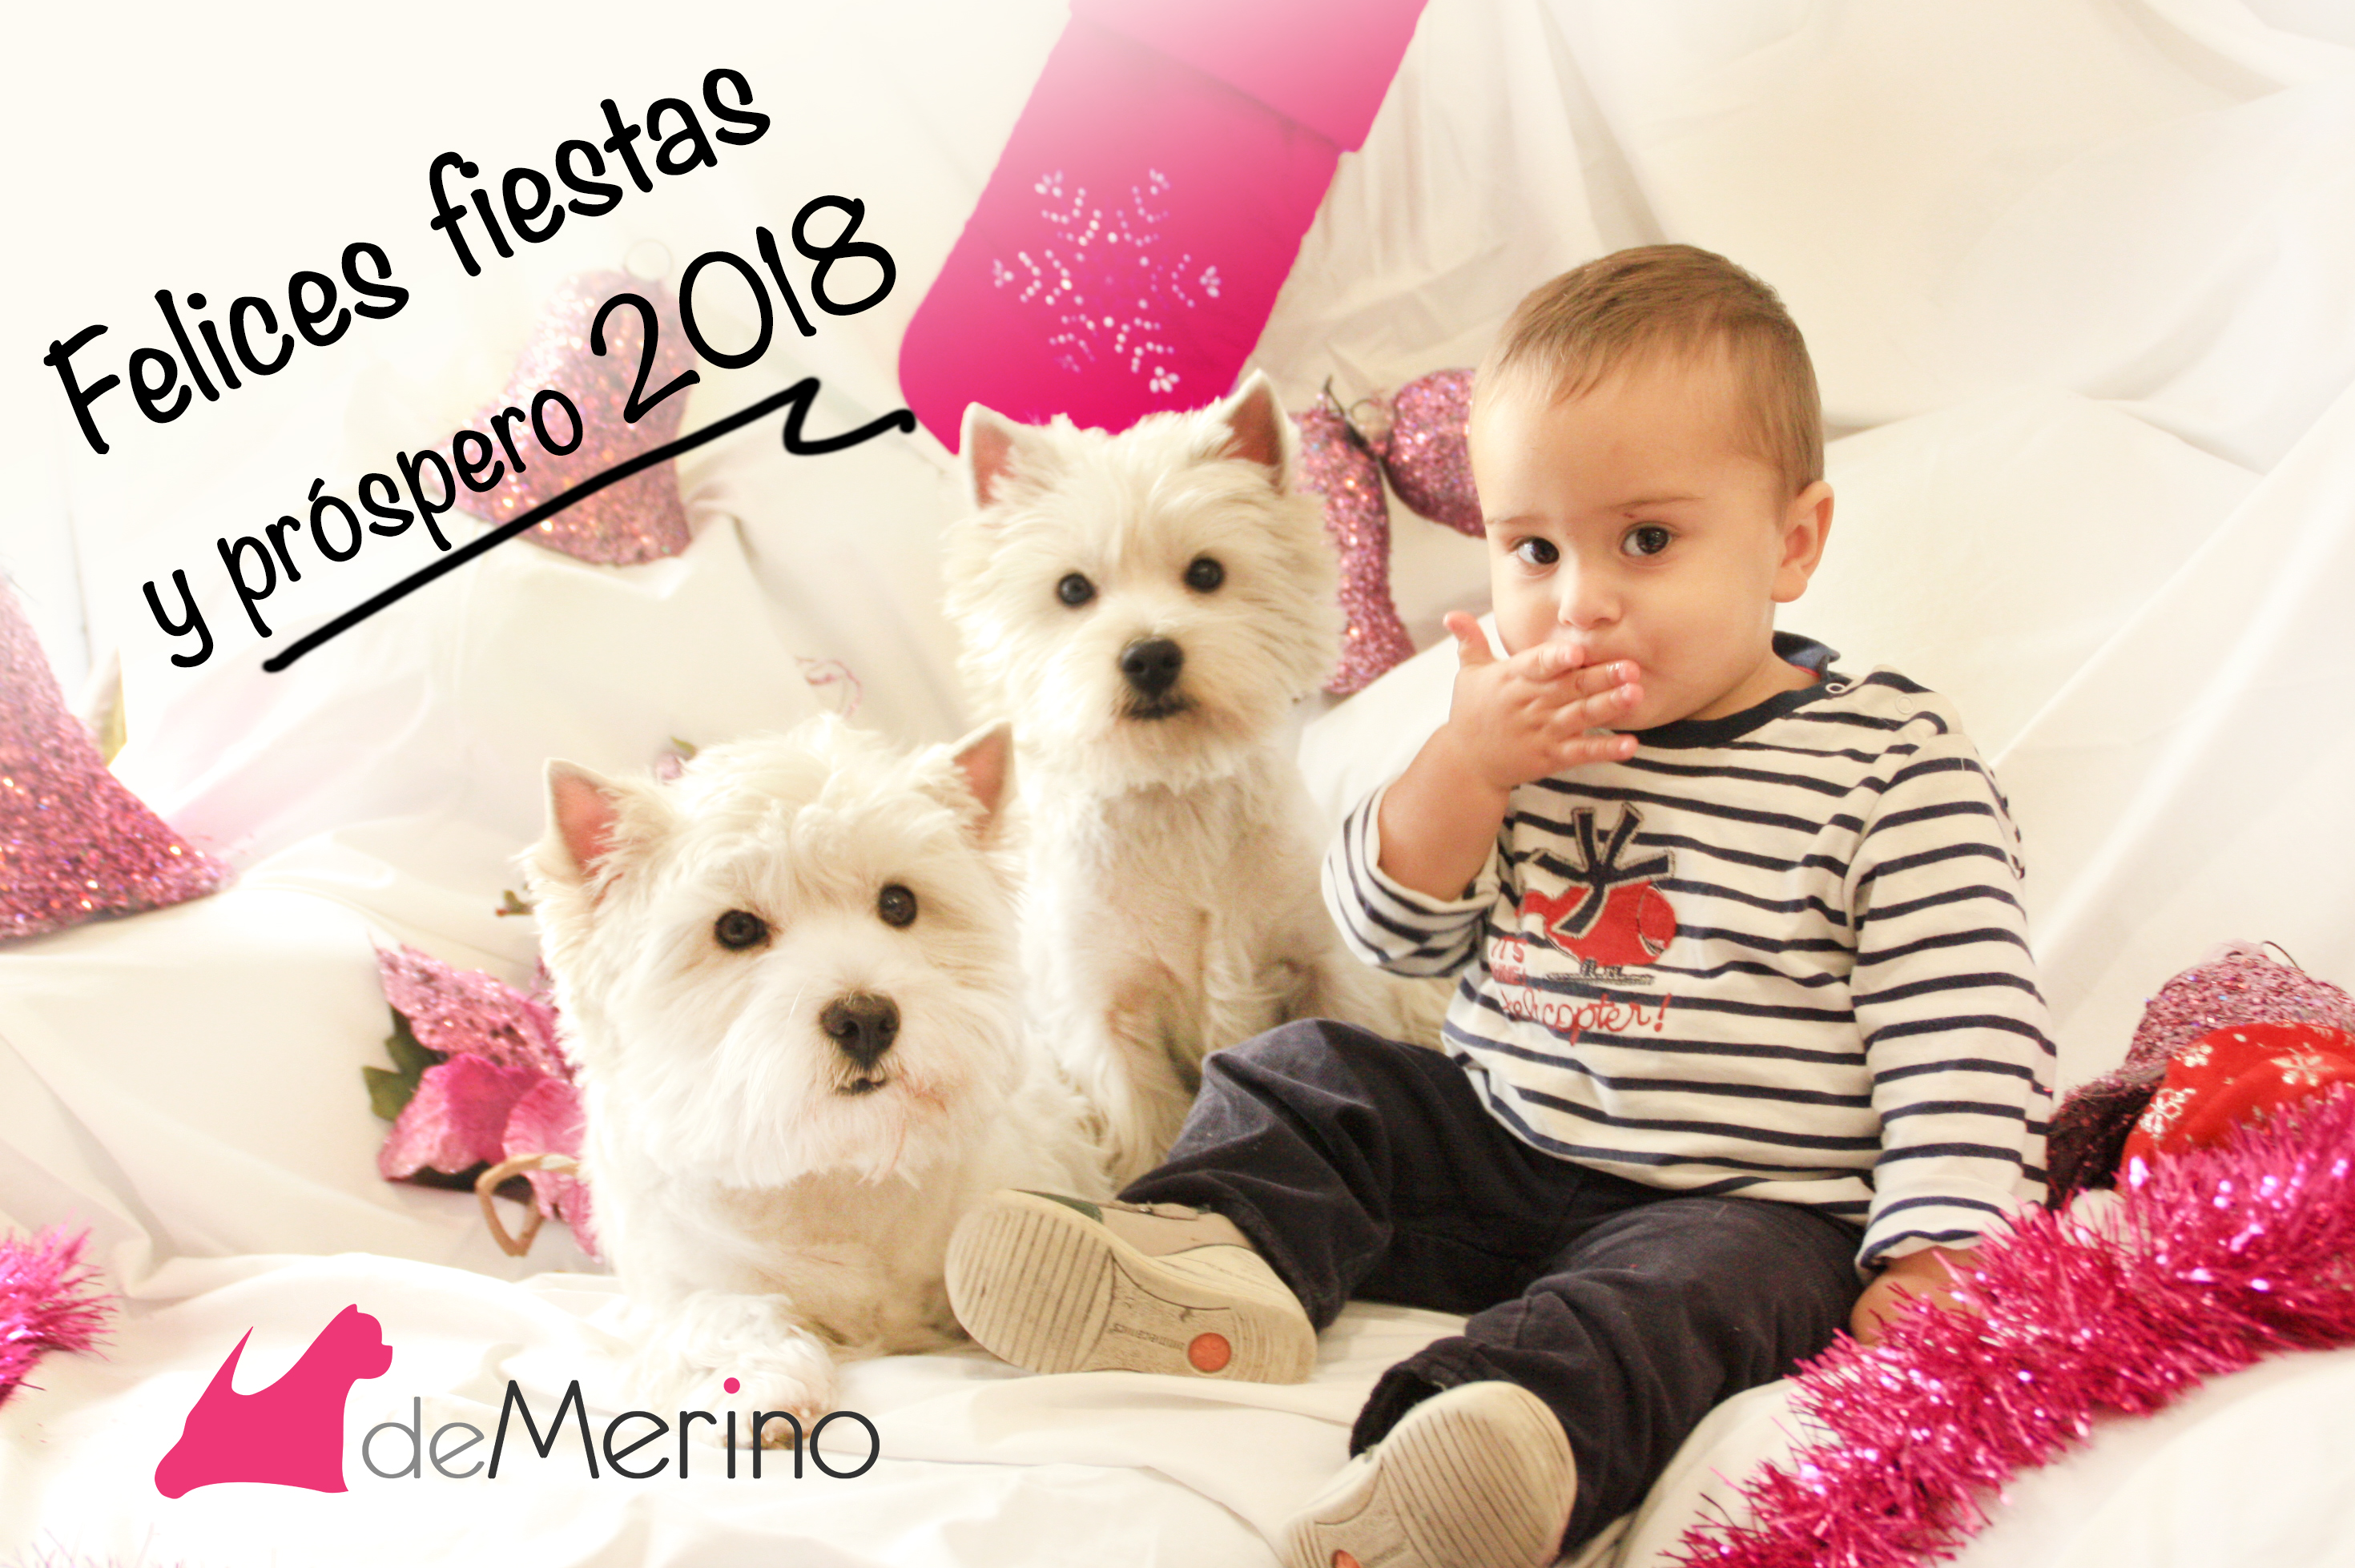 Felices fiestas 2017 westies Demerino